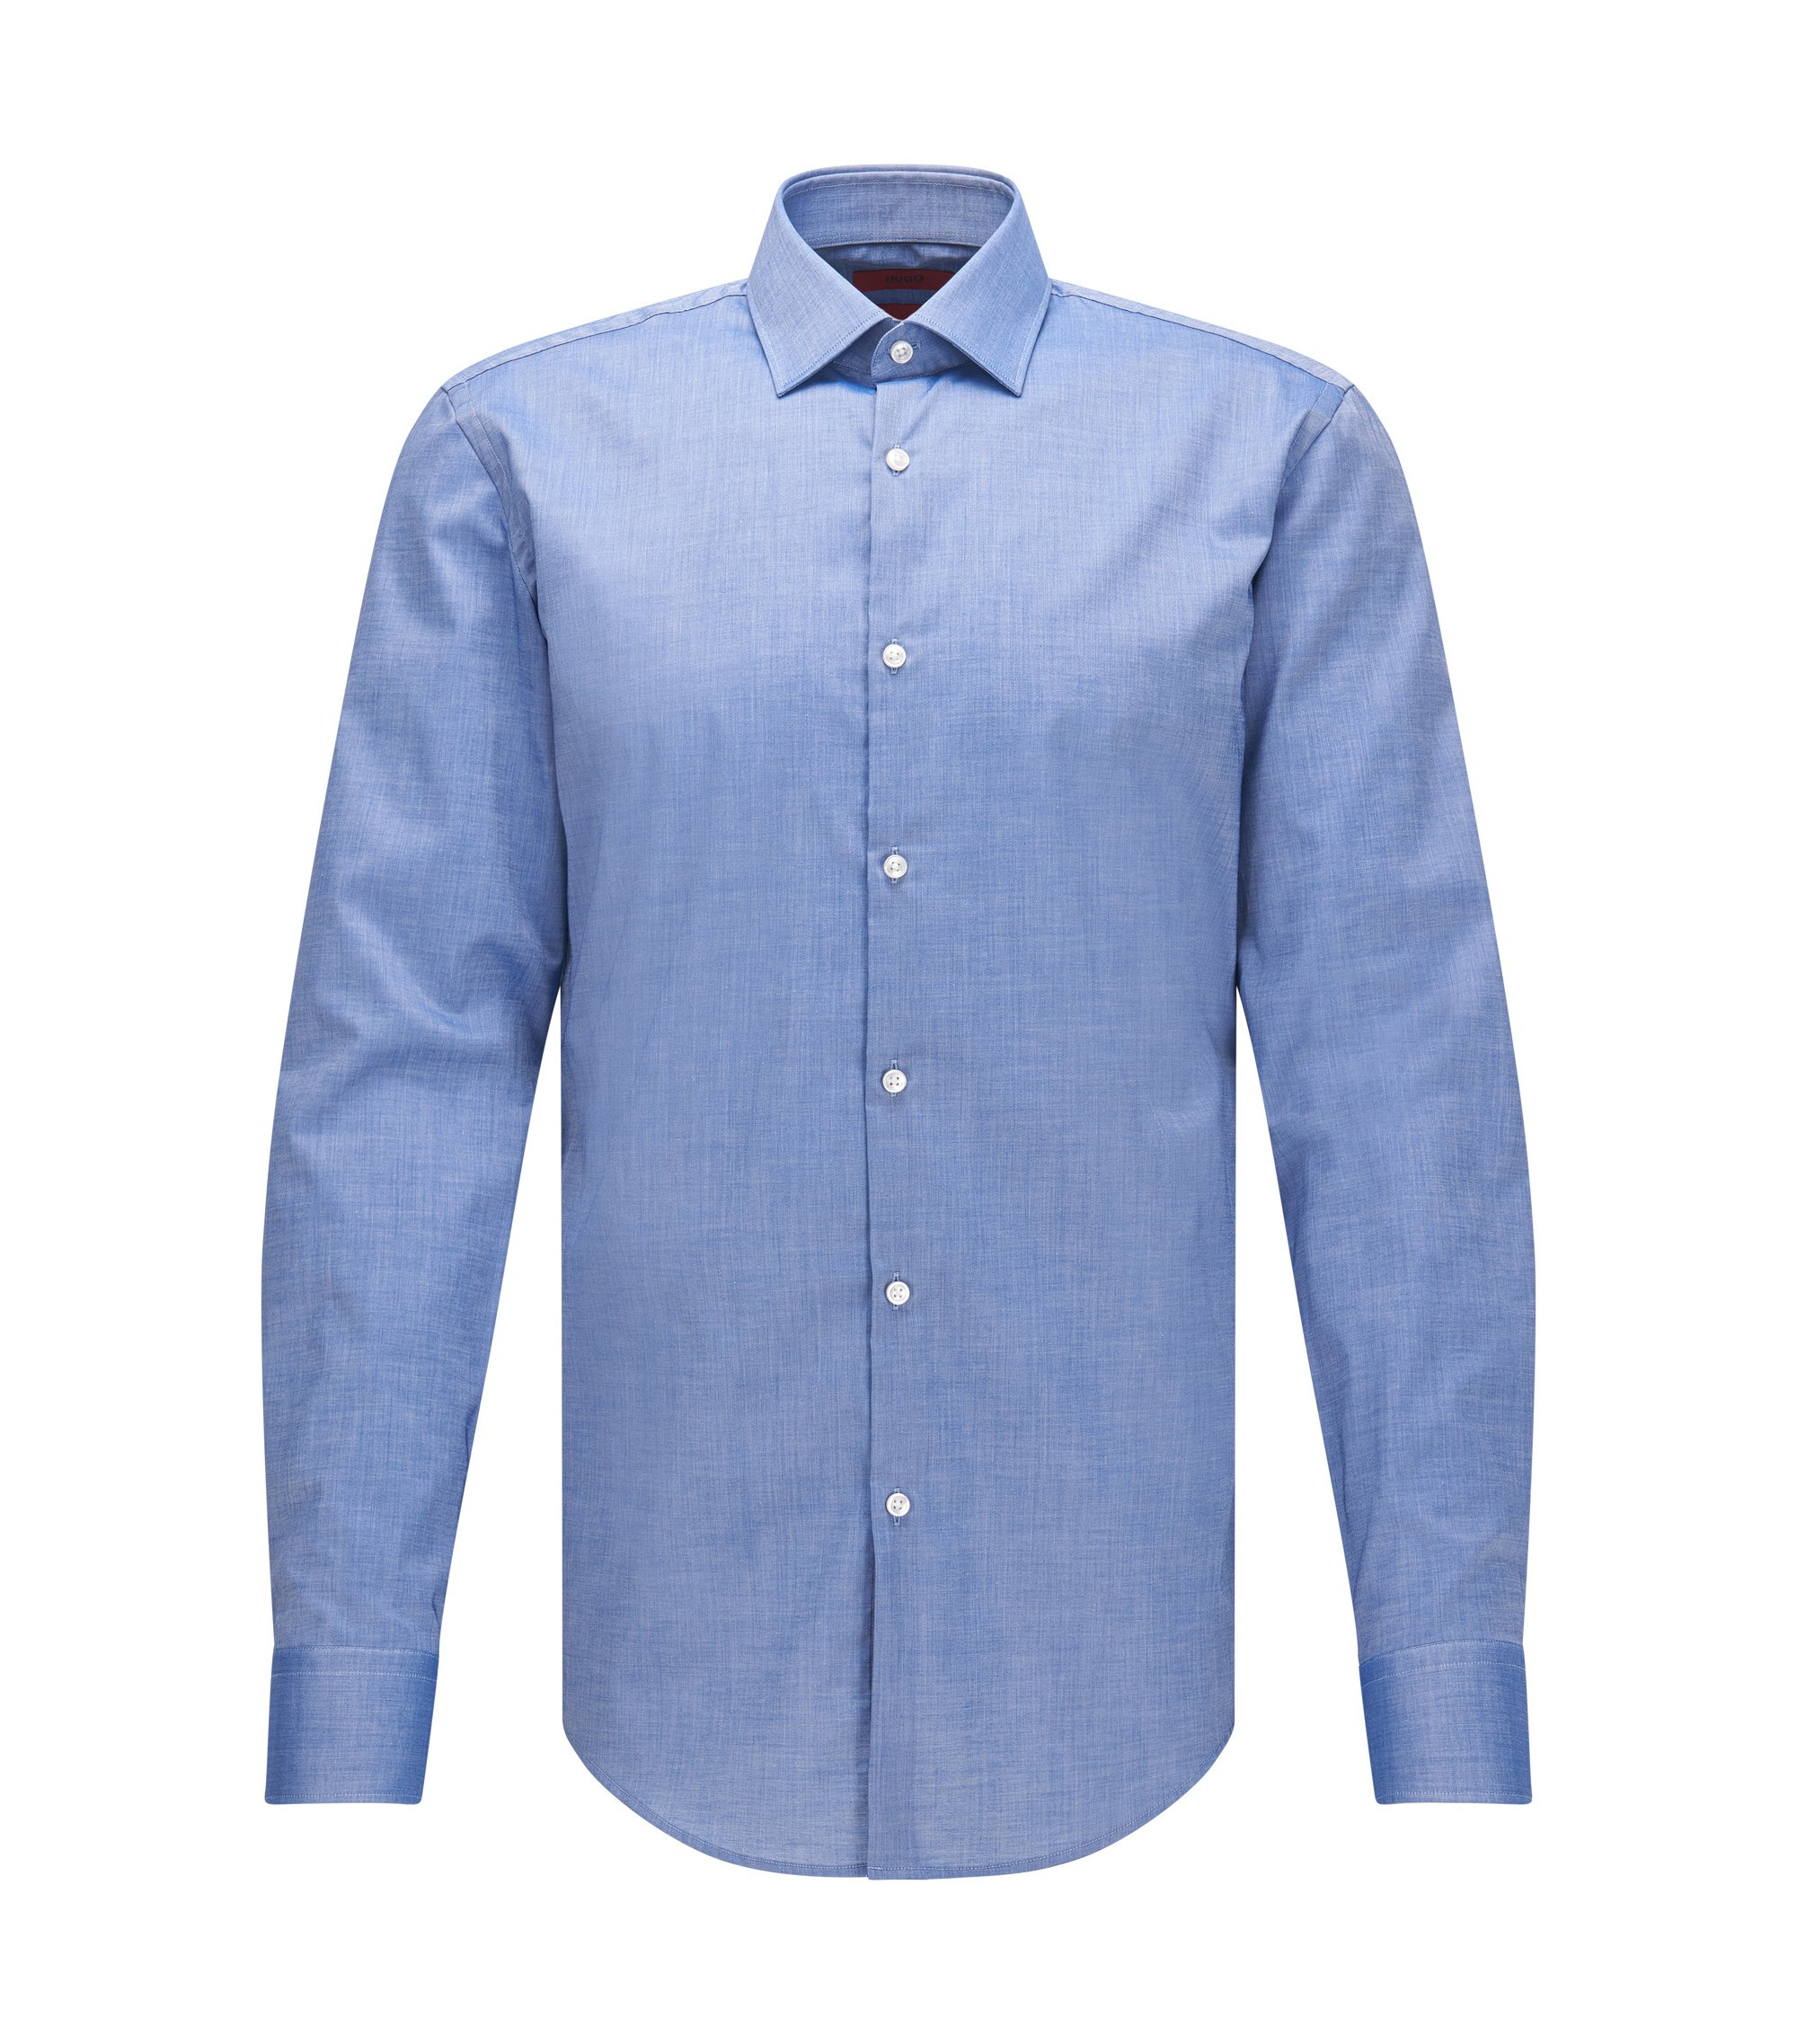 Camicia slim fit in cotone con polsini squadrati, Blue Scuro